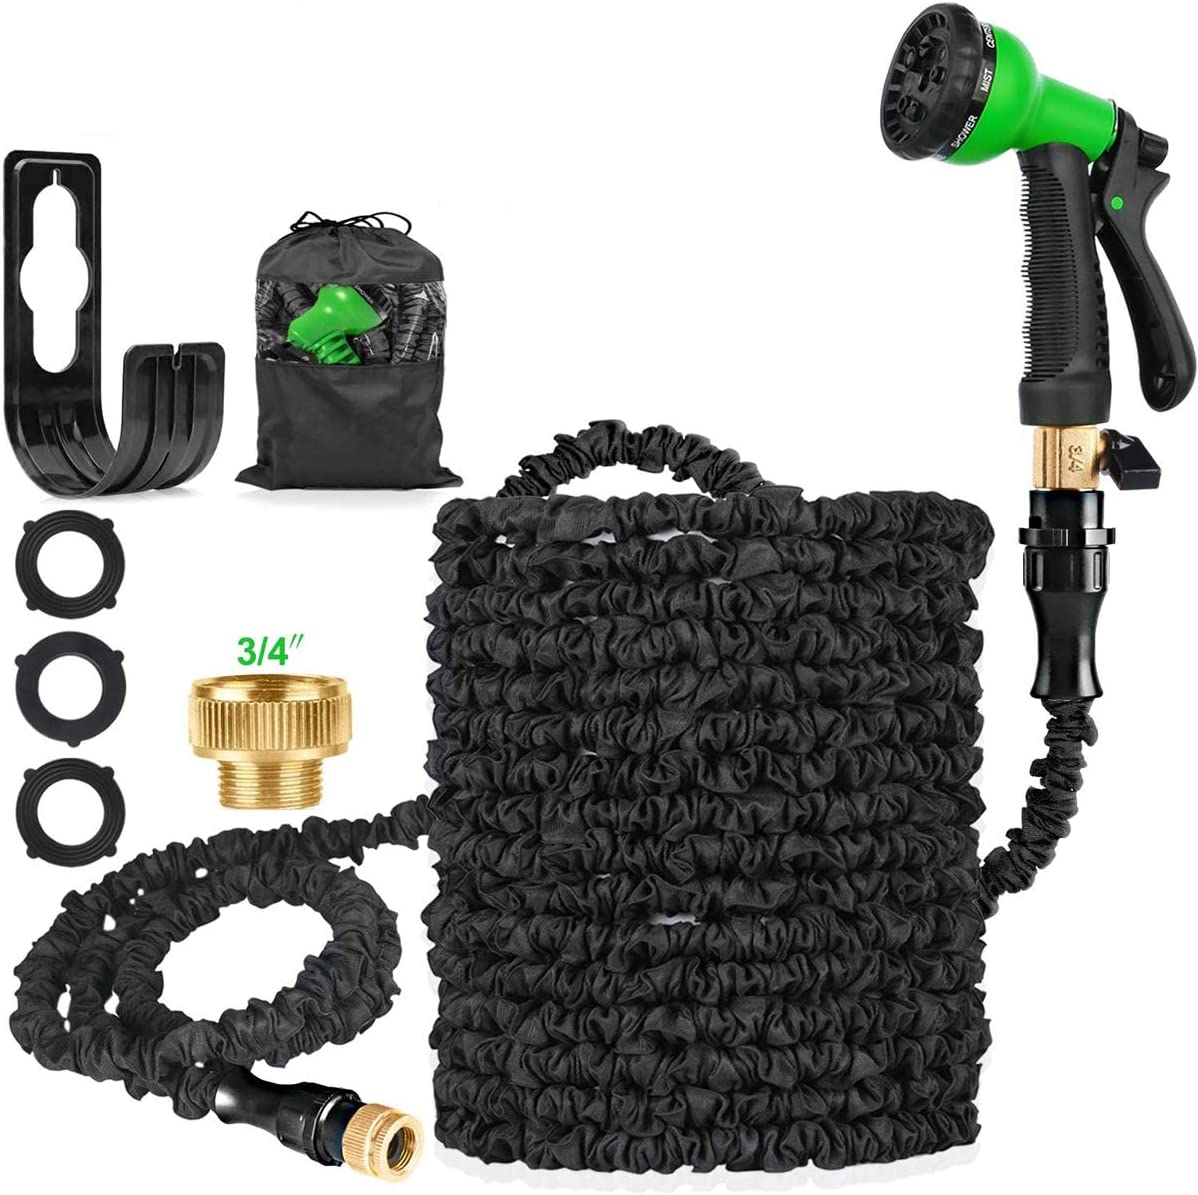 Suplong 100 FT Expandable Garden Water Hose Pipe, Magic Expanding Flexible Hose with 8 Function Spray Gun Nozzle Fittings Valve Wall Holder/Storage Bag for Lawn/Pet/Car/Boat Wash (1.5)